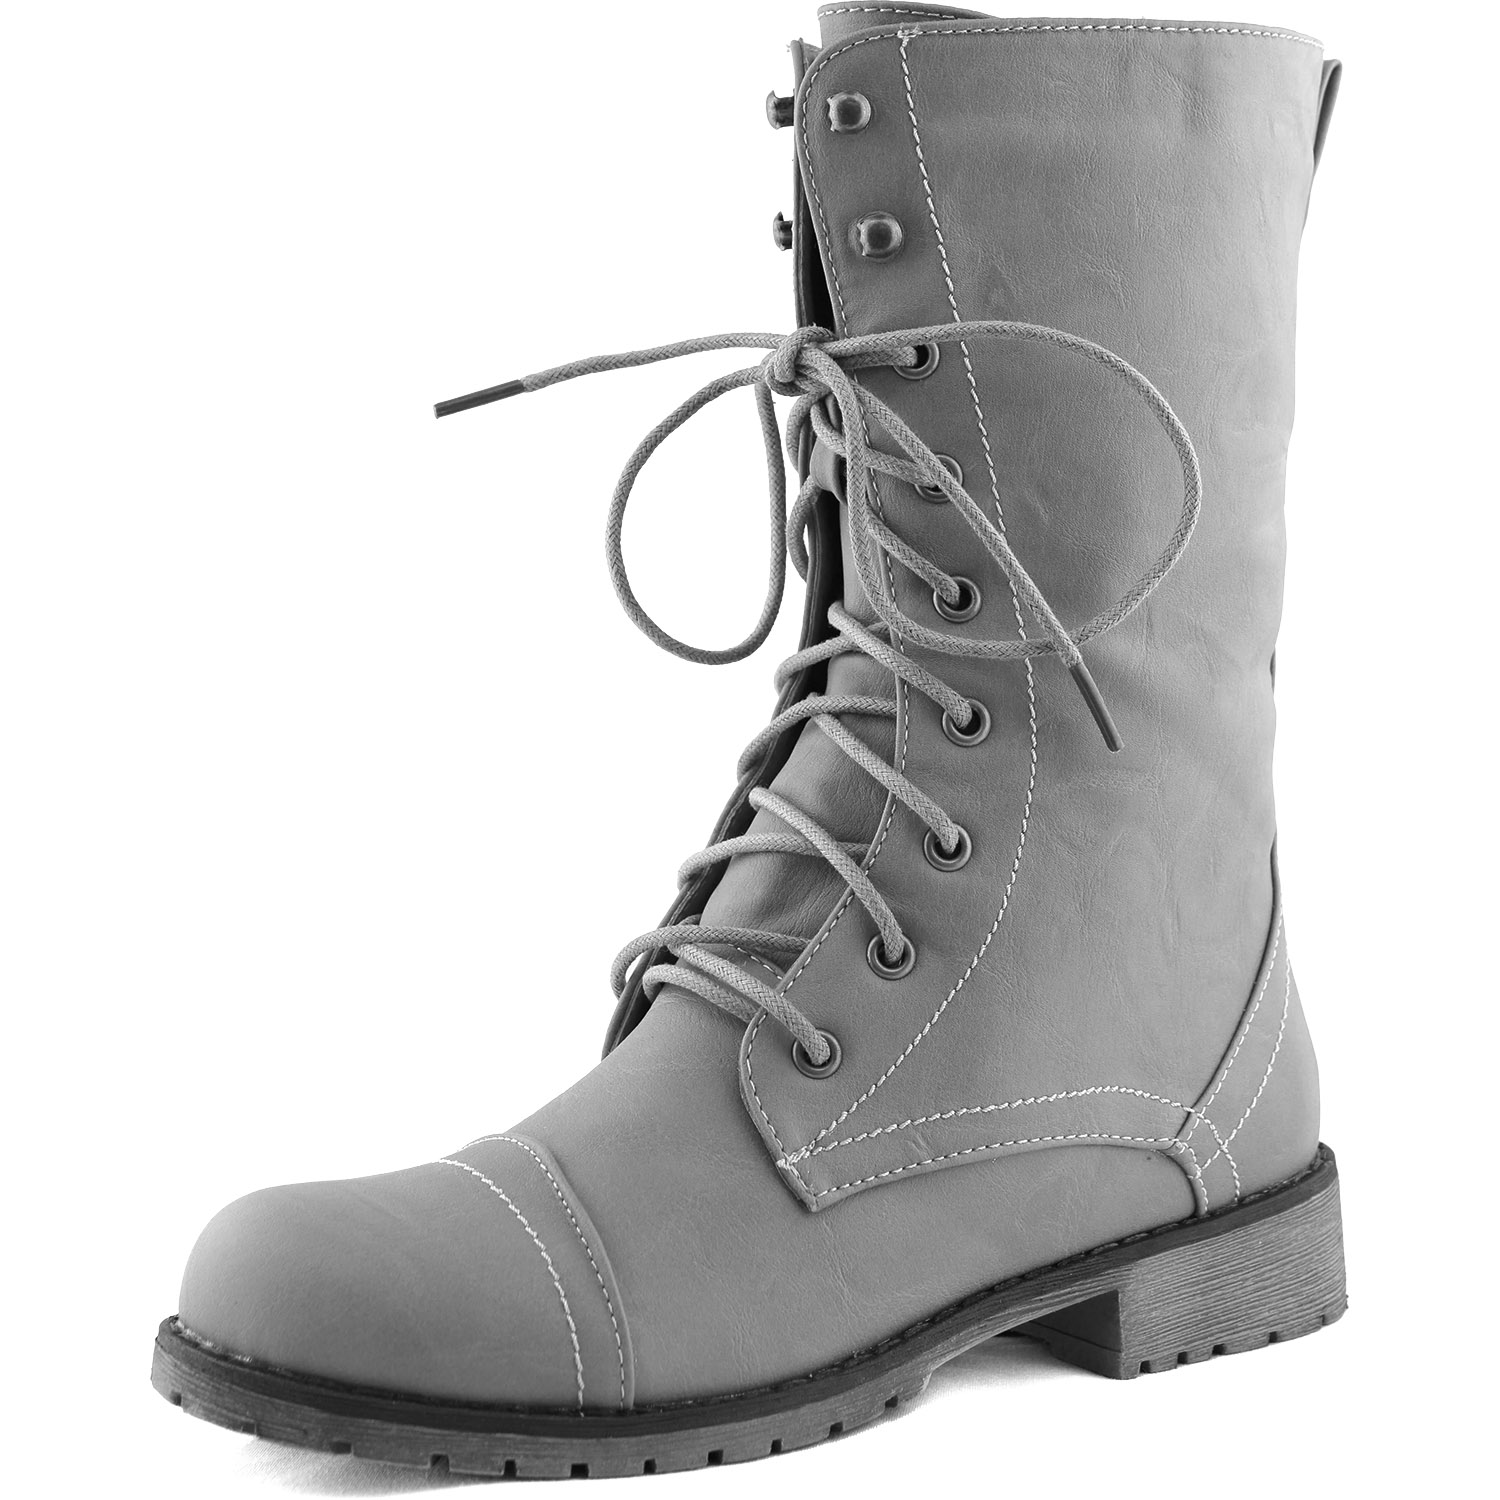 Womens Grey Lace Up Boots